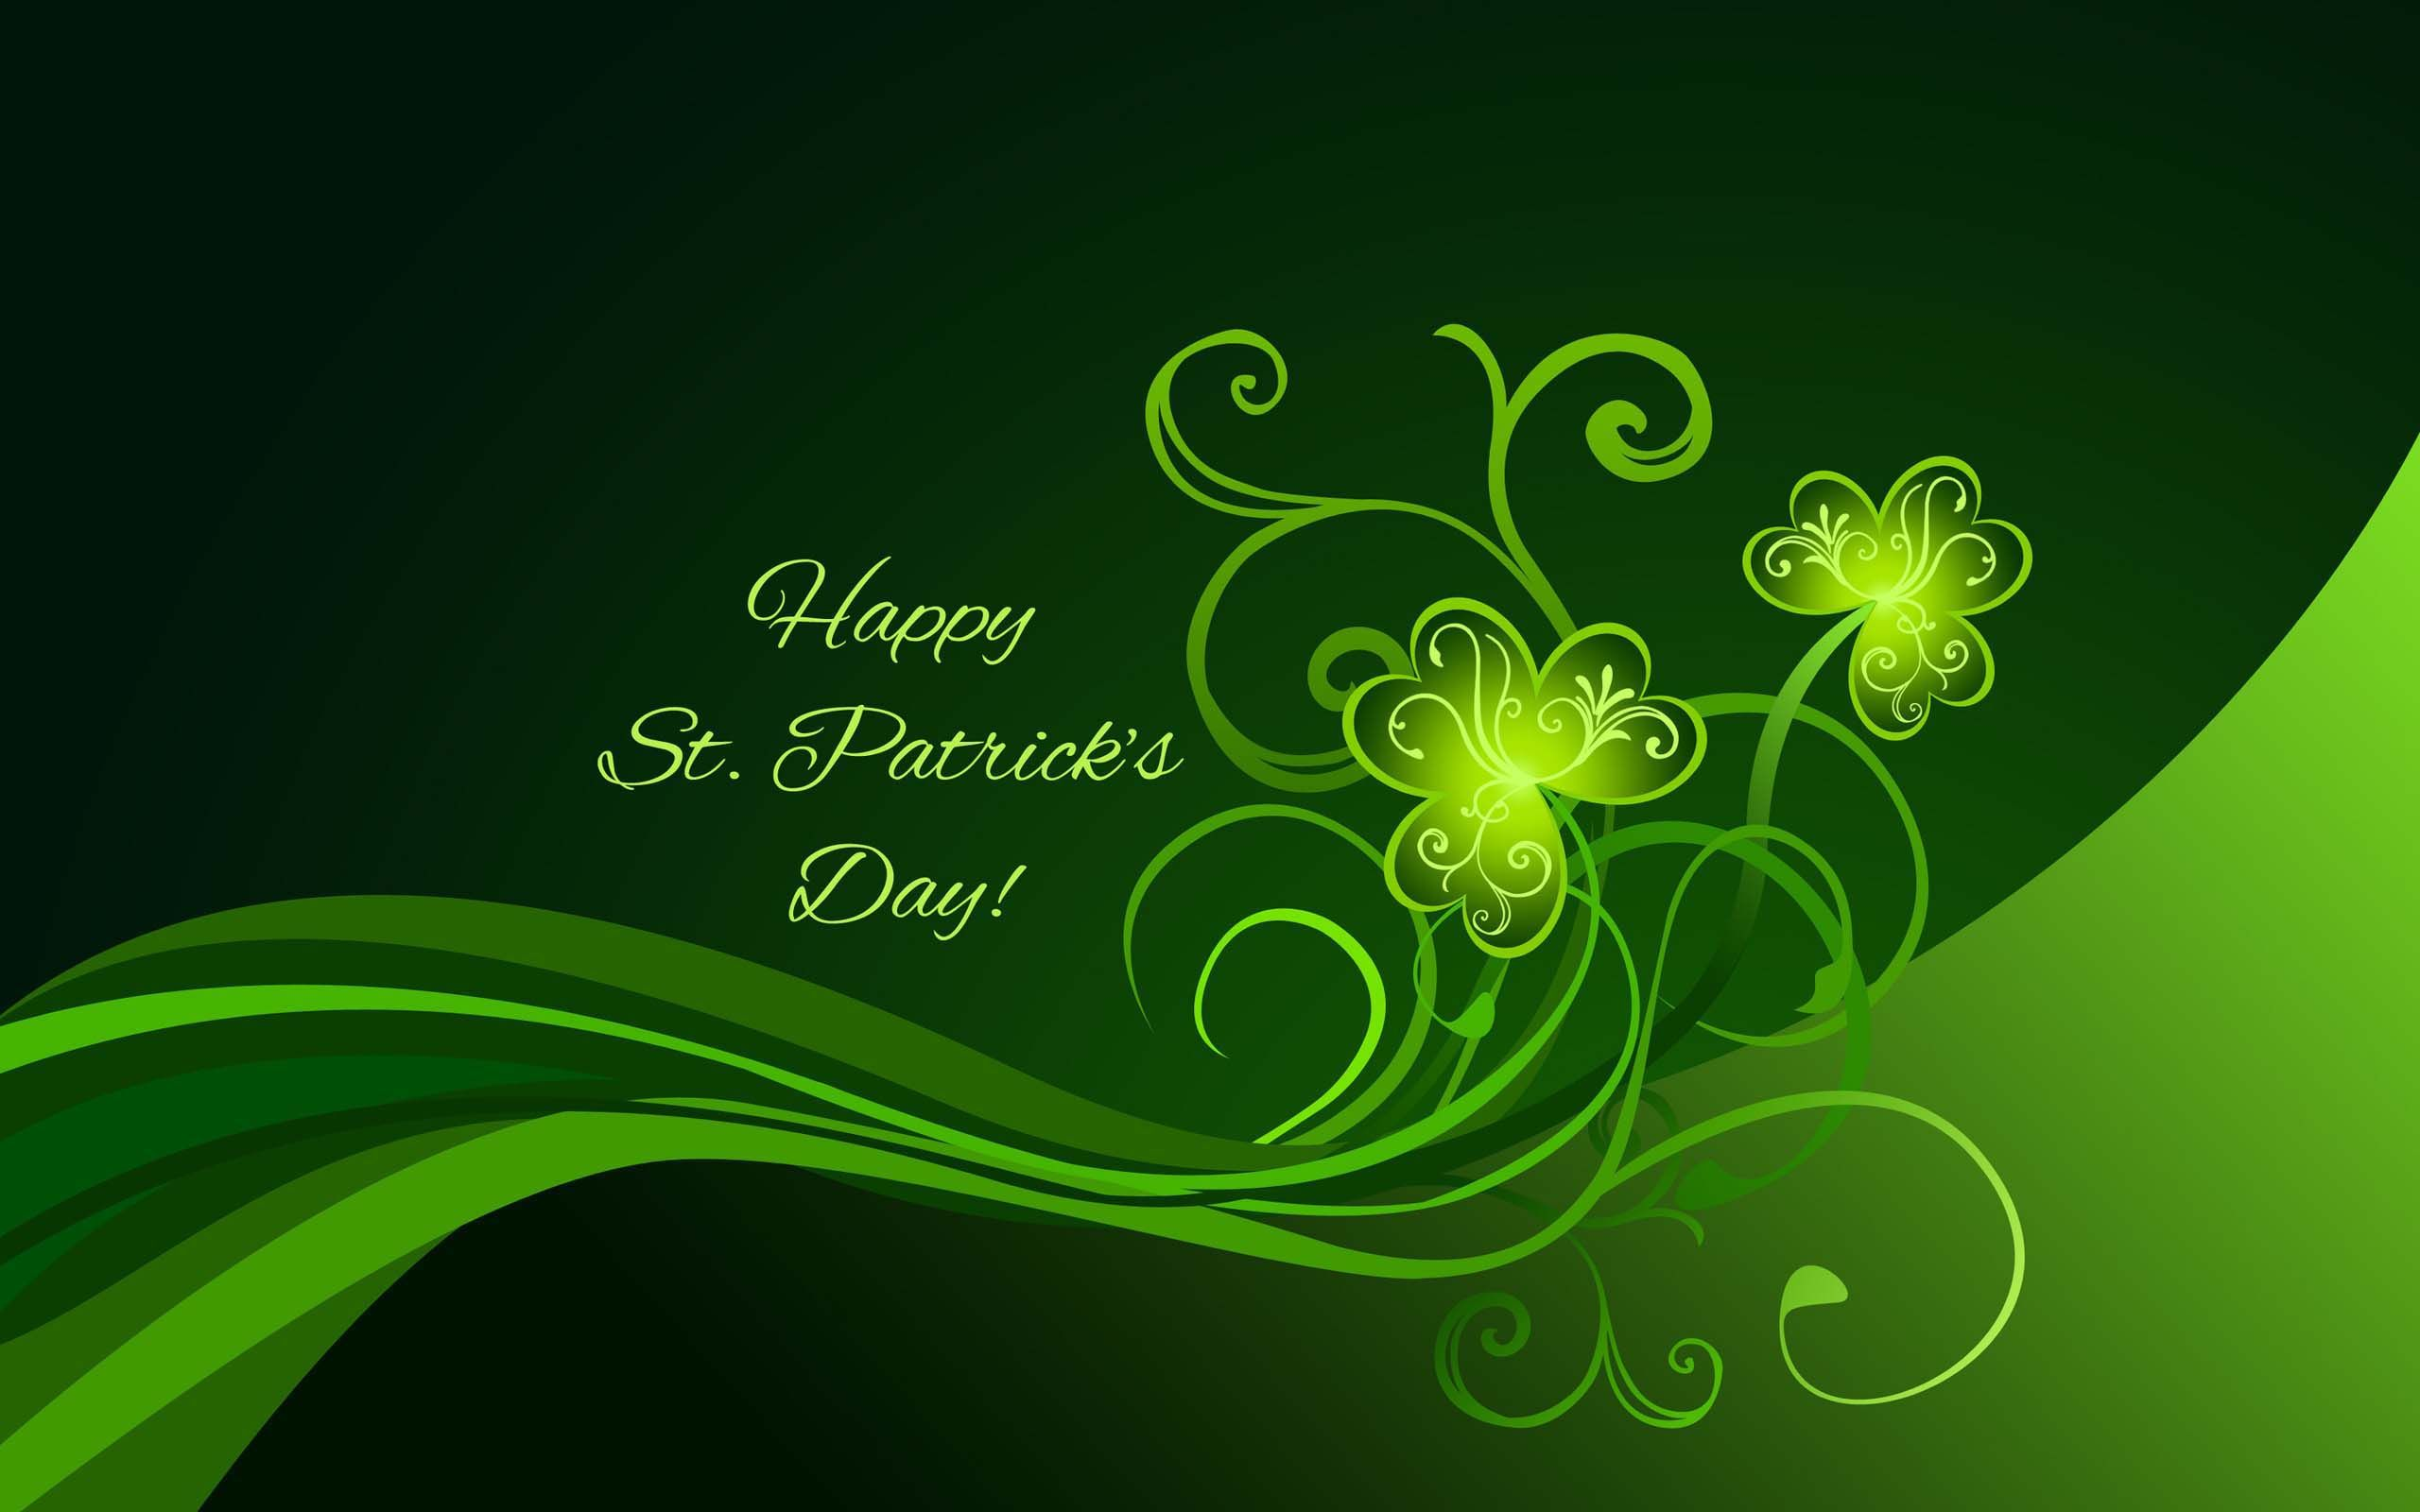 Patricks Day Backgrounds   St Patricks Day 196118   HD 2560x1600